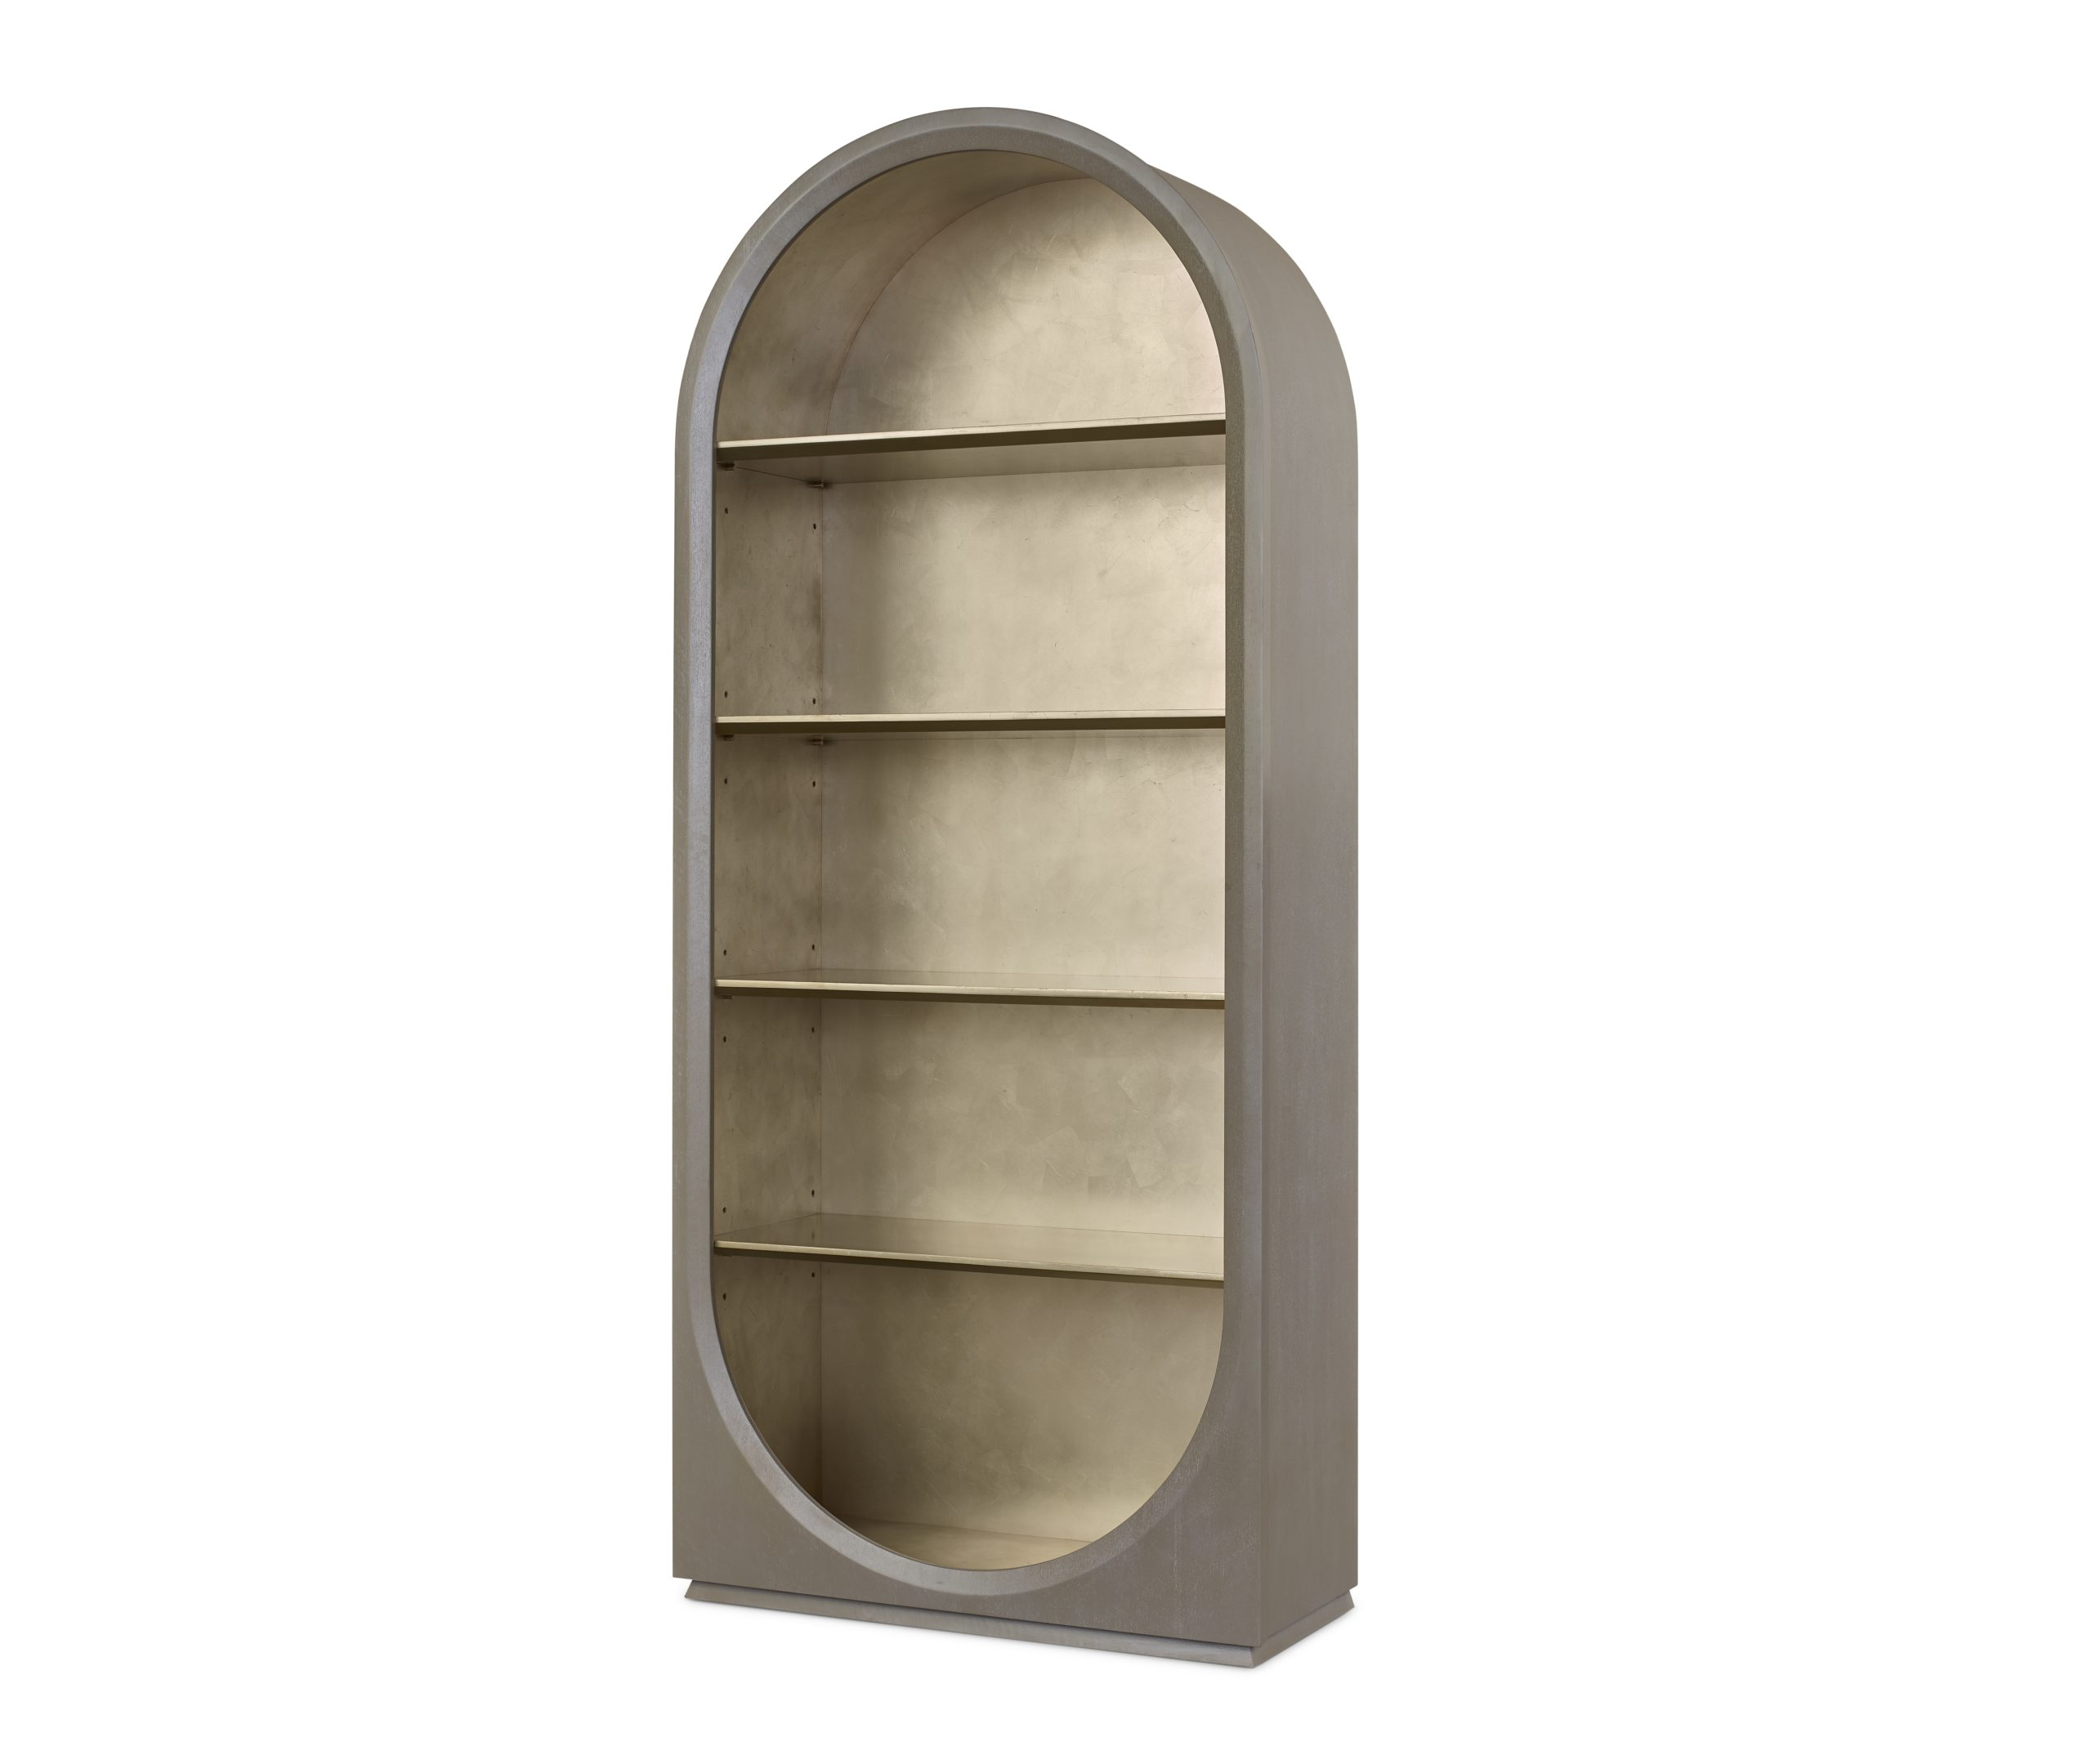 Baker_products_WNWN_camillo_etagere_BAA3095_FRONT_3QRT-scaled-1